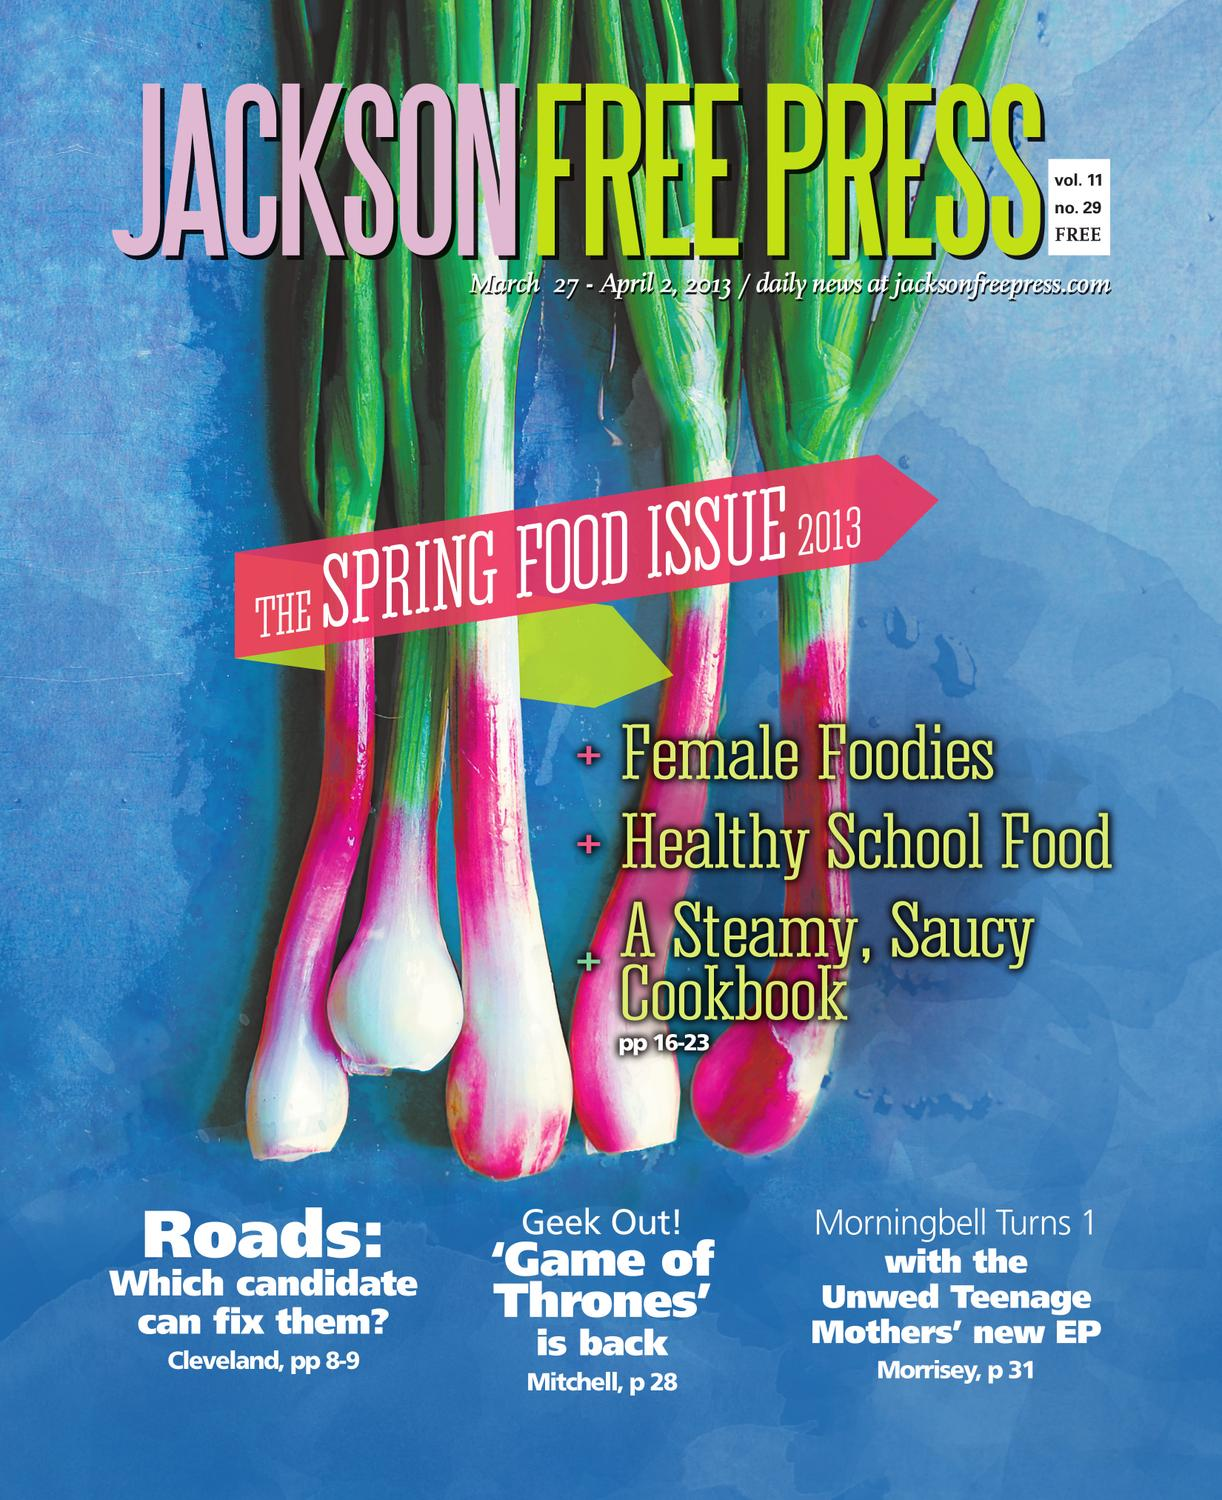 v11n29 - The Spring Food Issue 2013: Female Foodies, Healthy